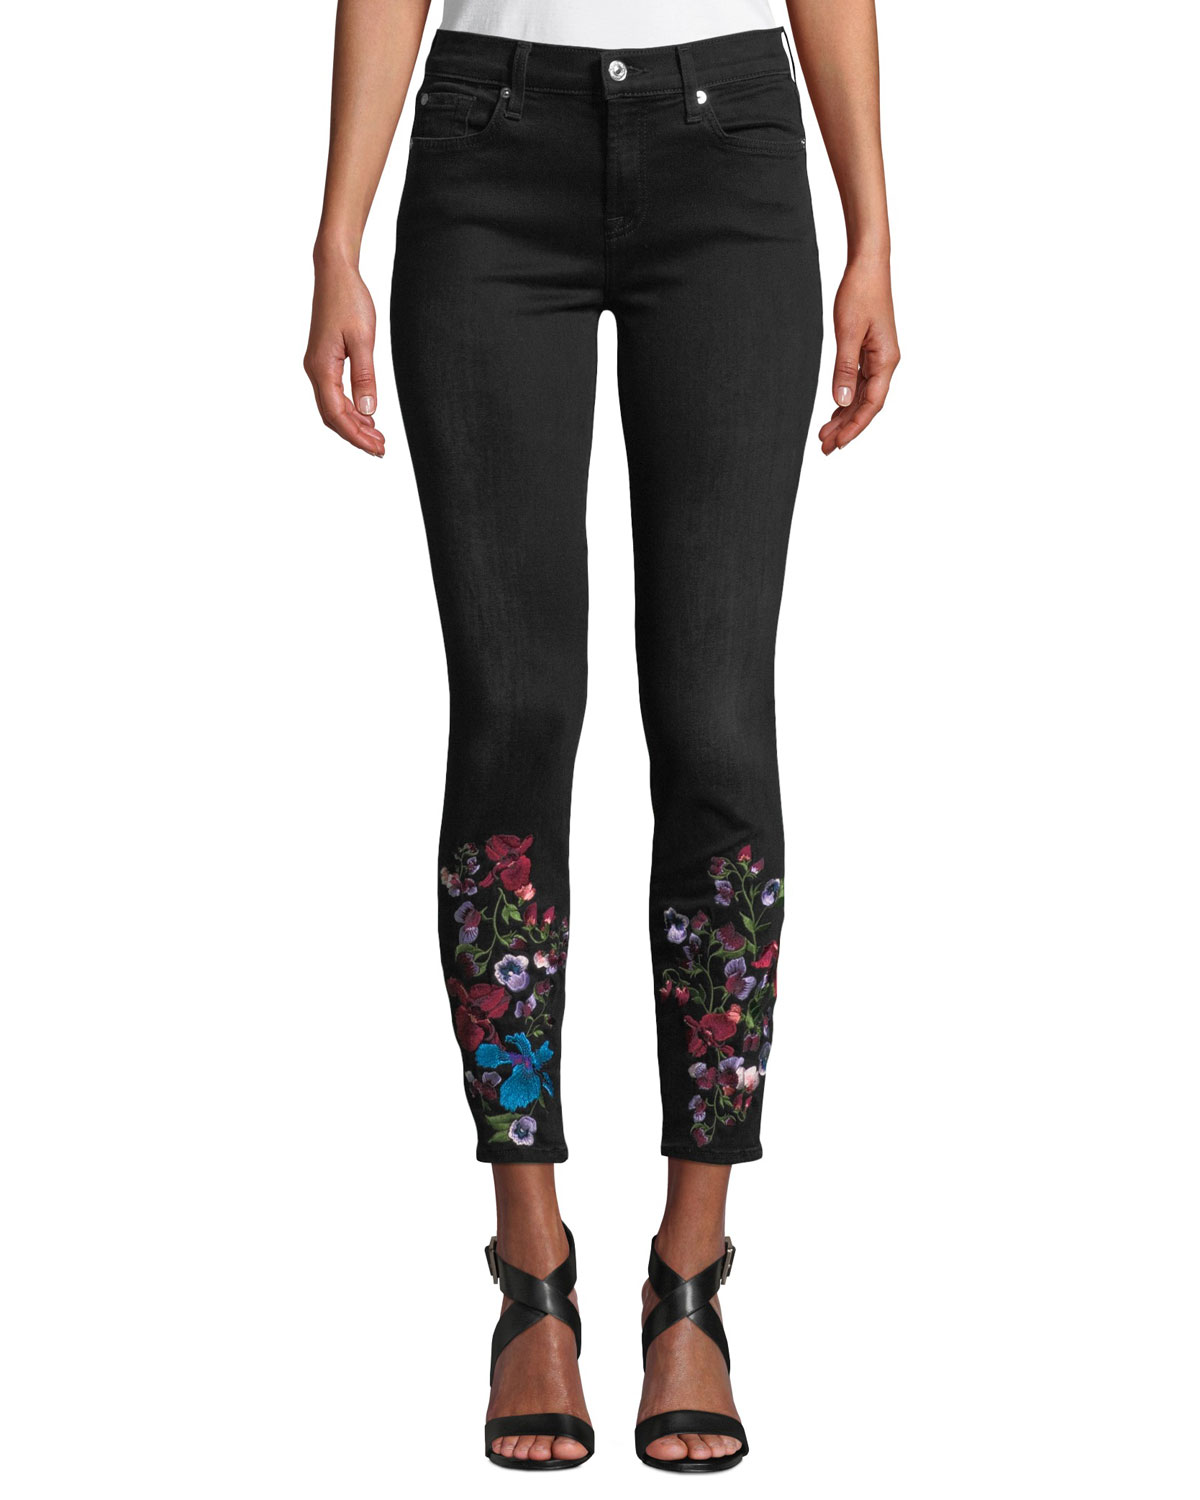 The Ankle Skinny Embroidered Jeans